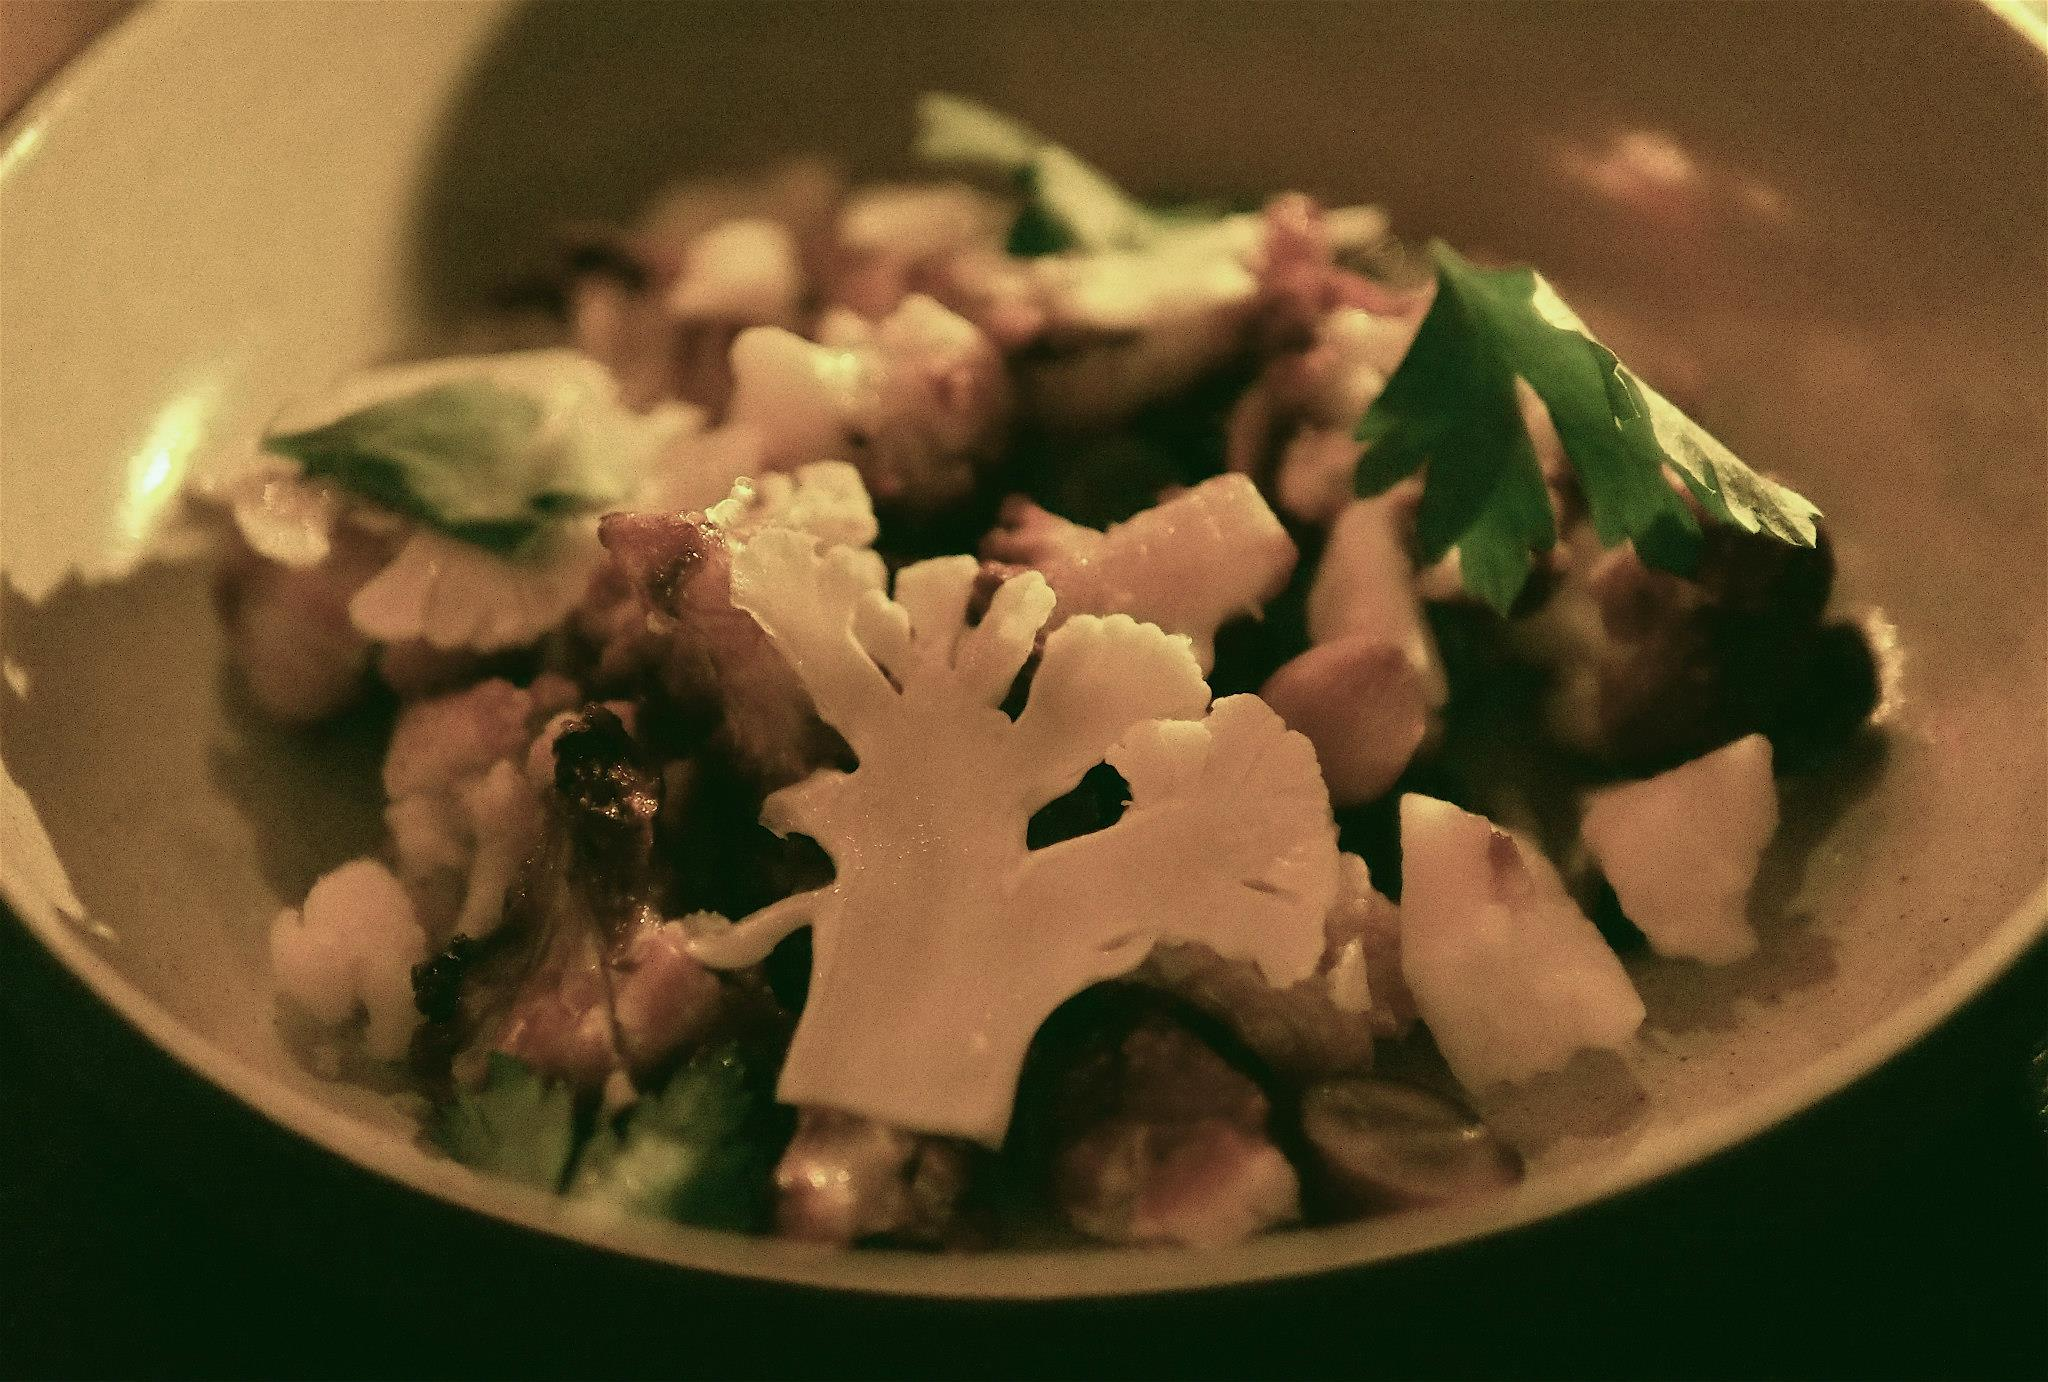 Cauliflower roasted with grapes, cheddar and marcona almonds